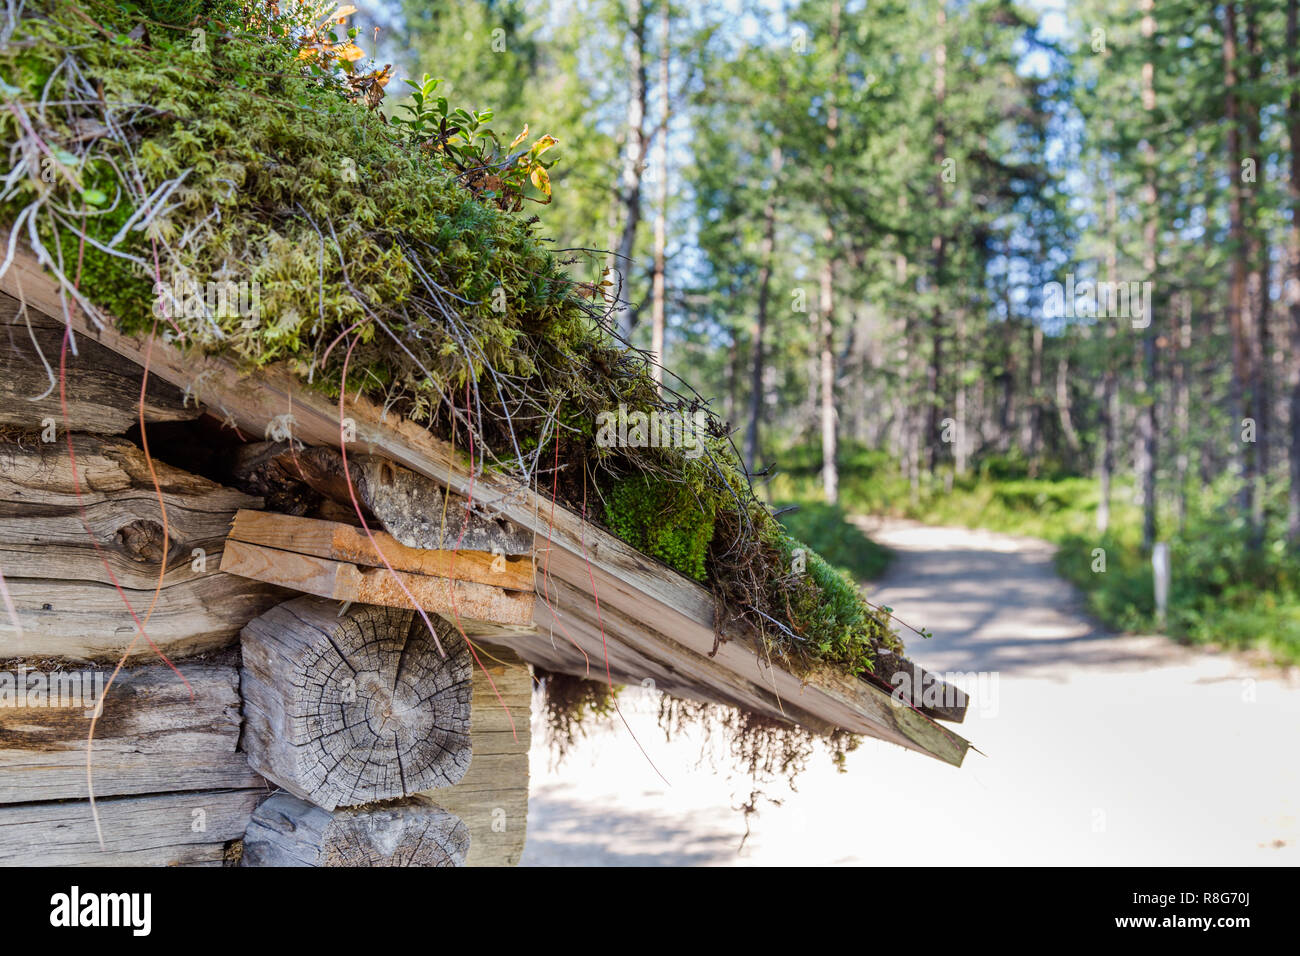 Traditional Sami loghouse with green roof in Lapland - Stock Image